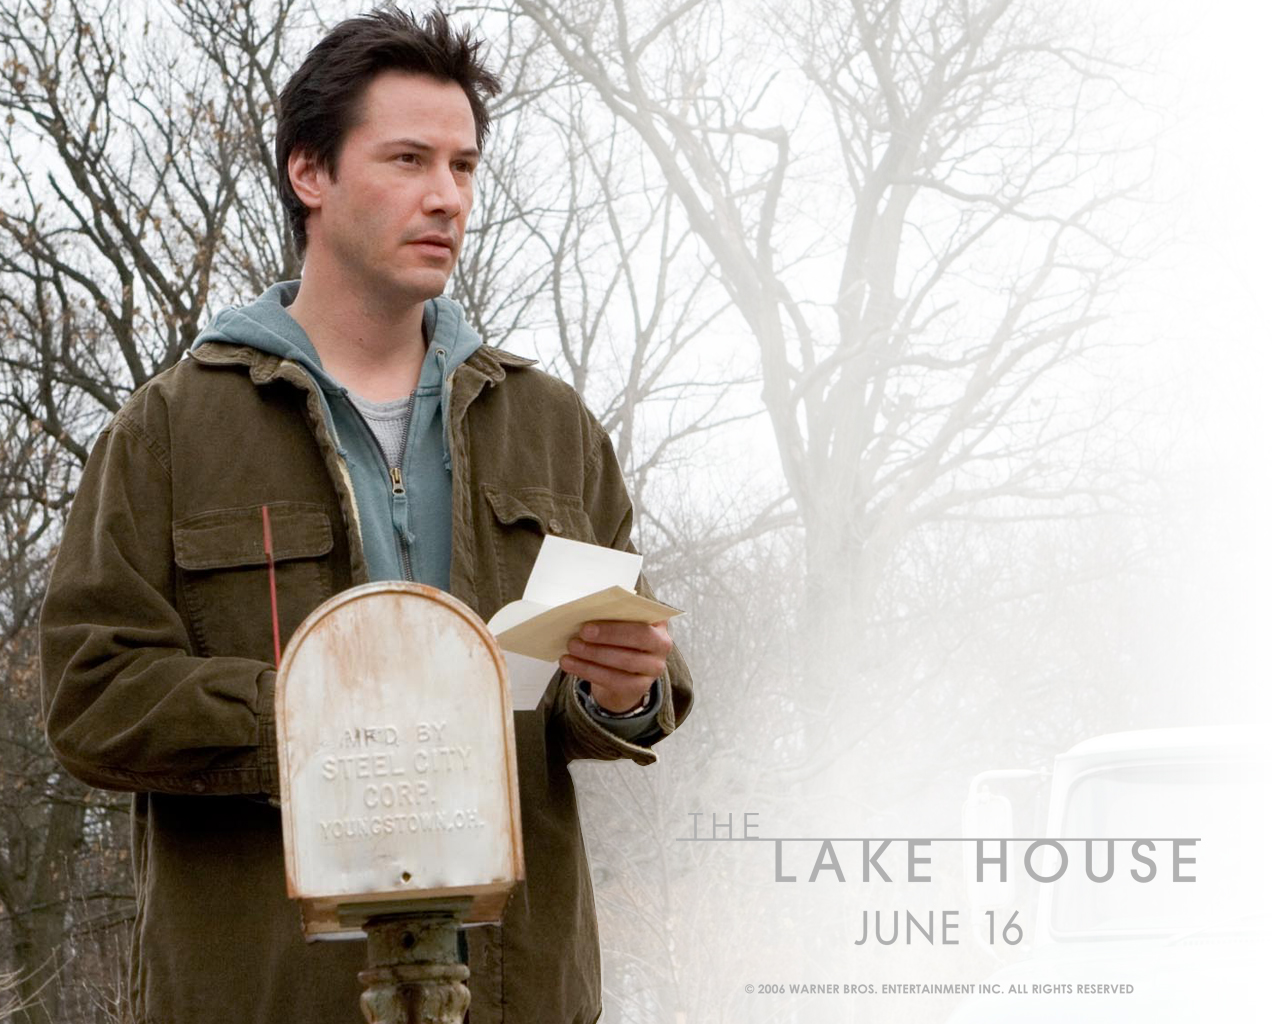 Keanu Reeves in The Lake House Wallpaper 2 1280